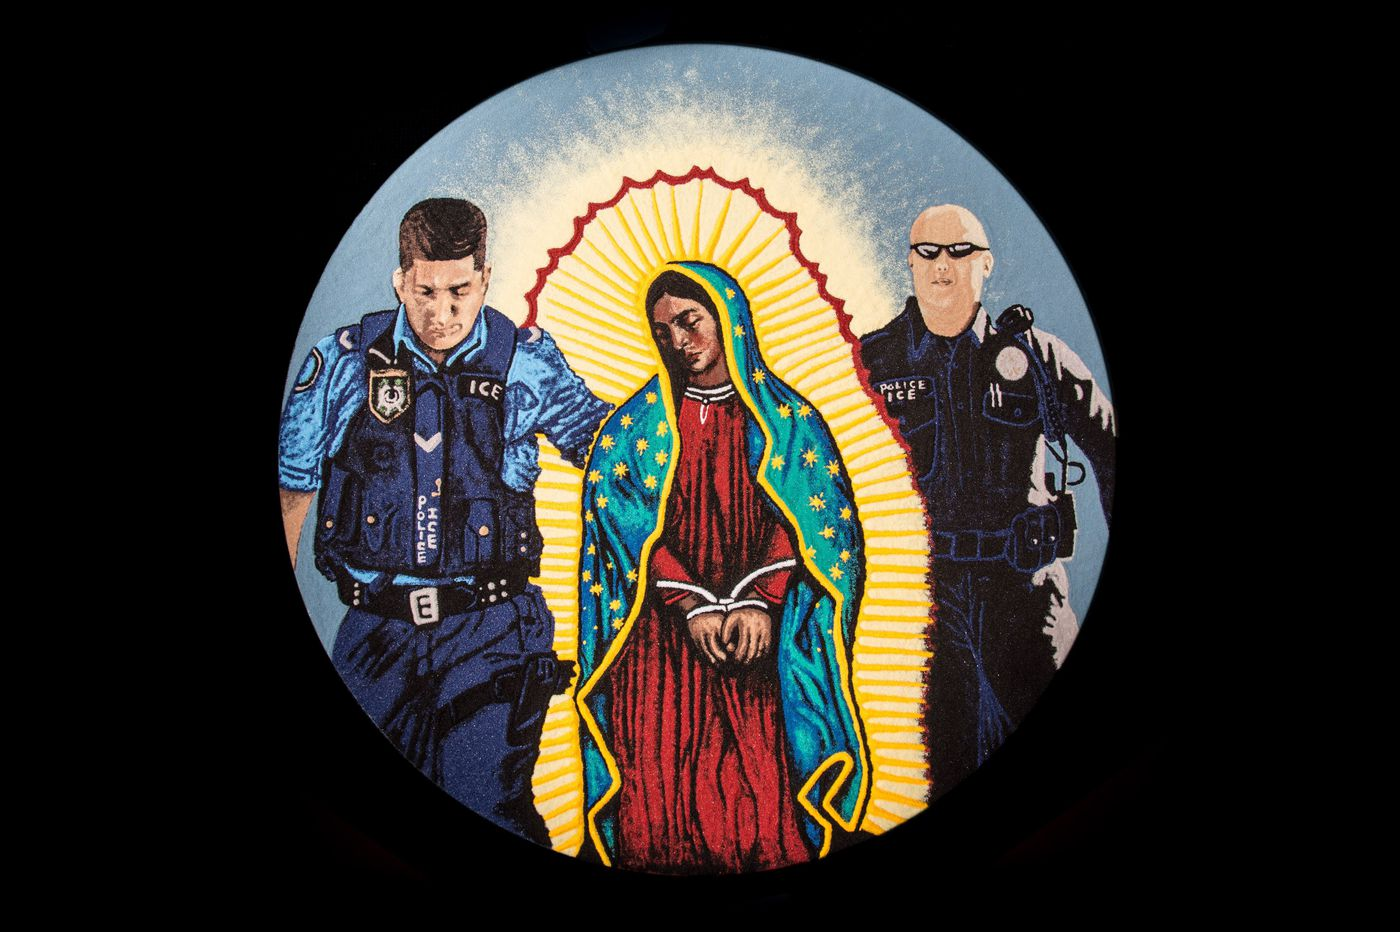 The Virgin Mary in handcuffs: How a viral image humanizes the immigration debate